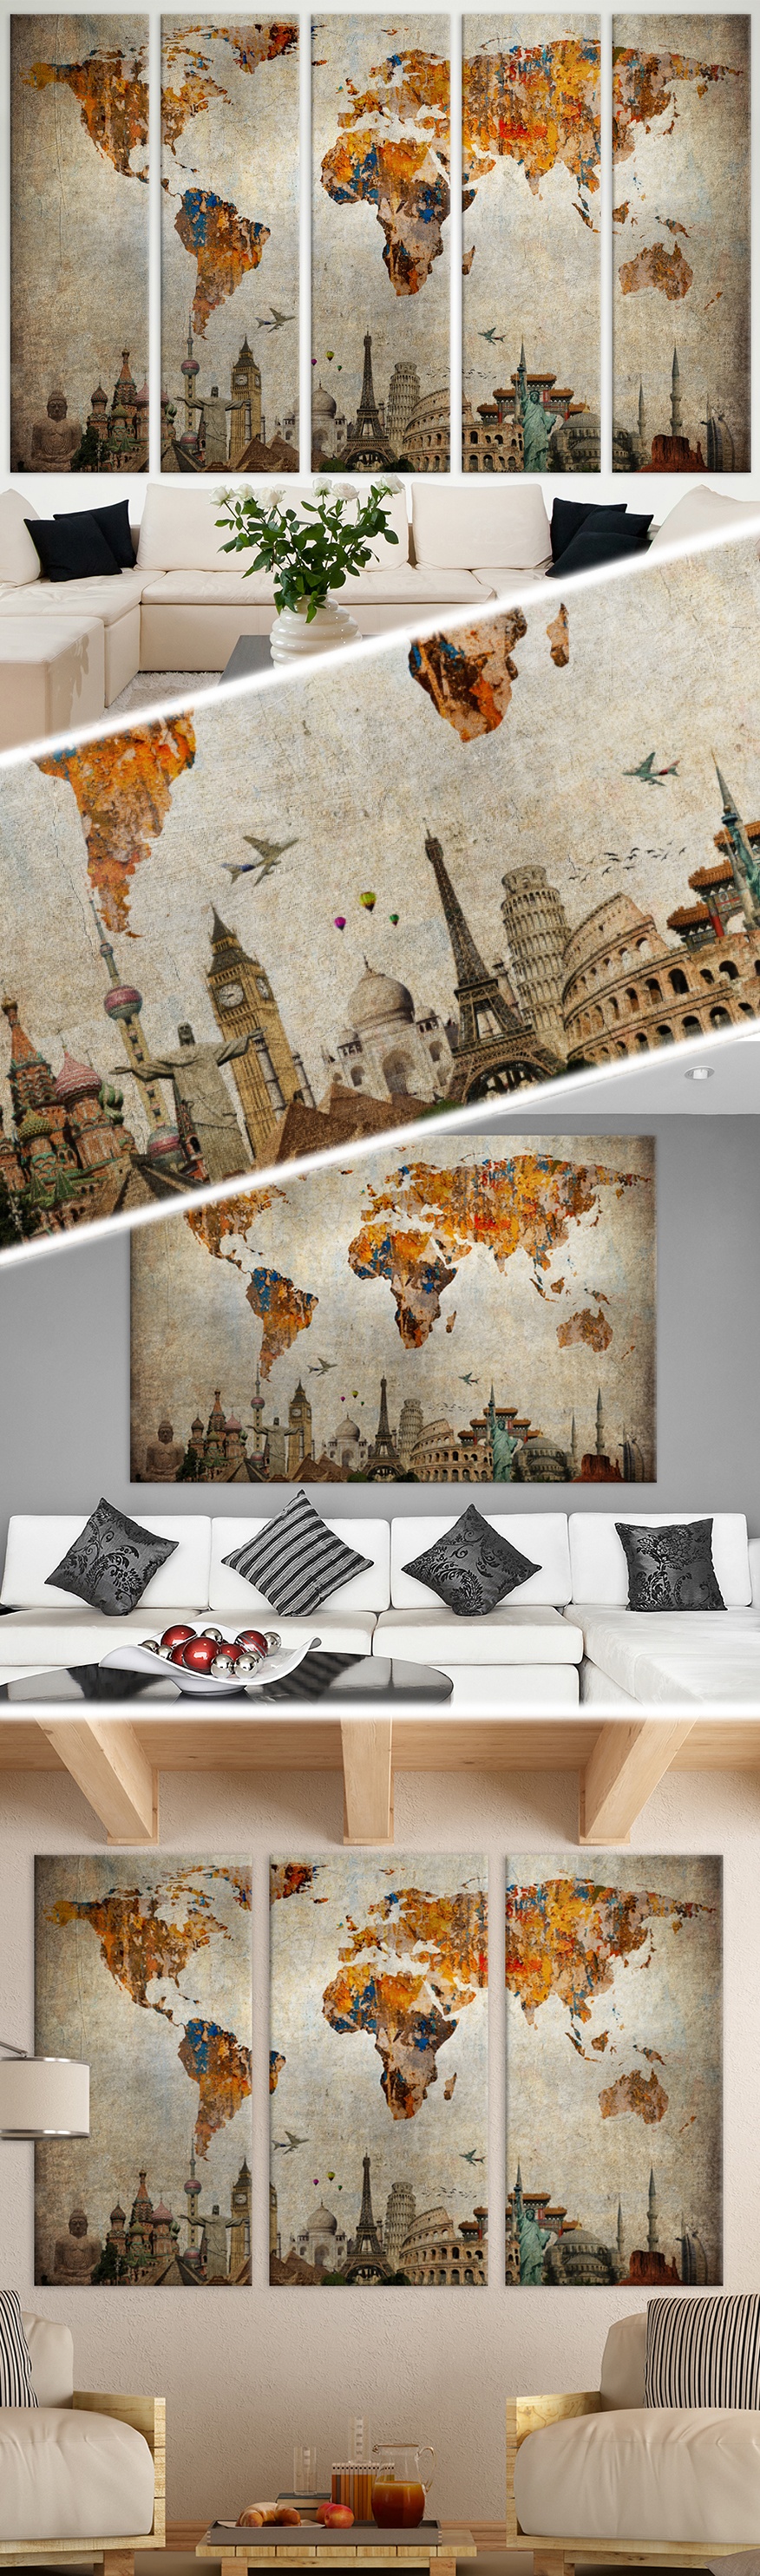 creative world map canvas prints wall art for large home or office wall decoration